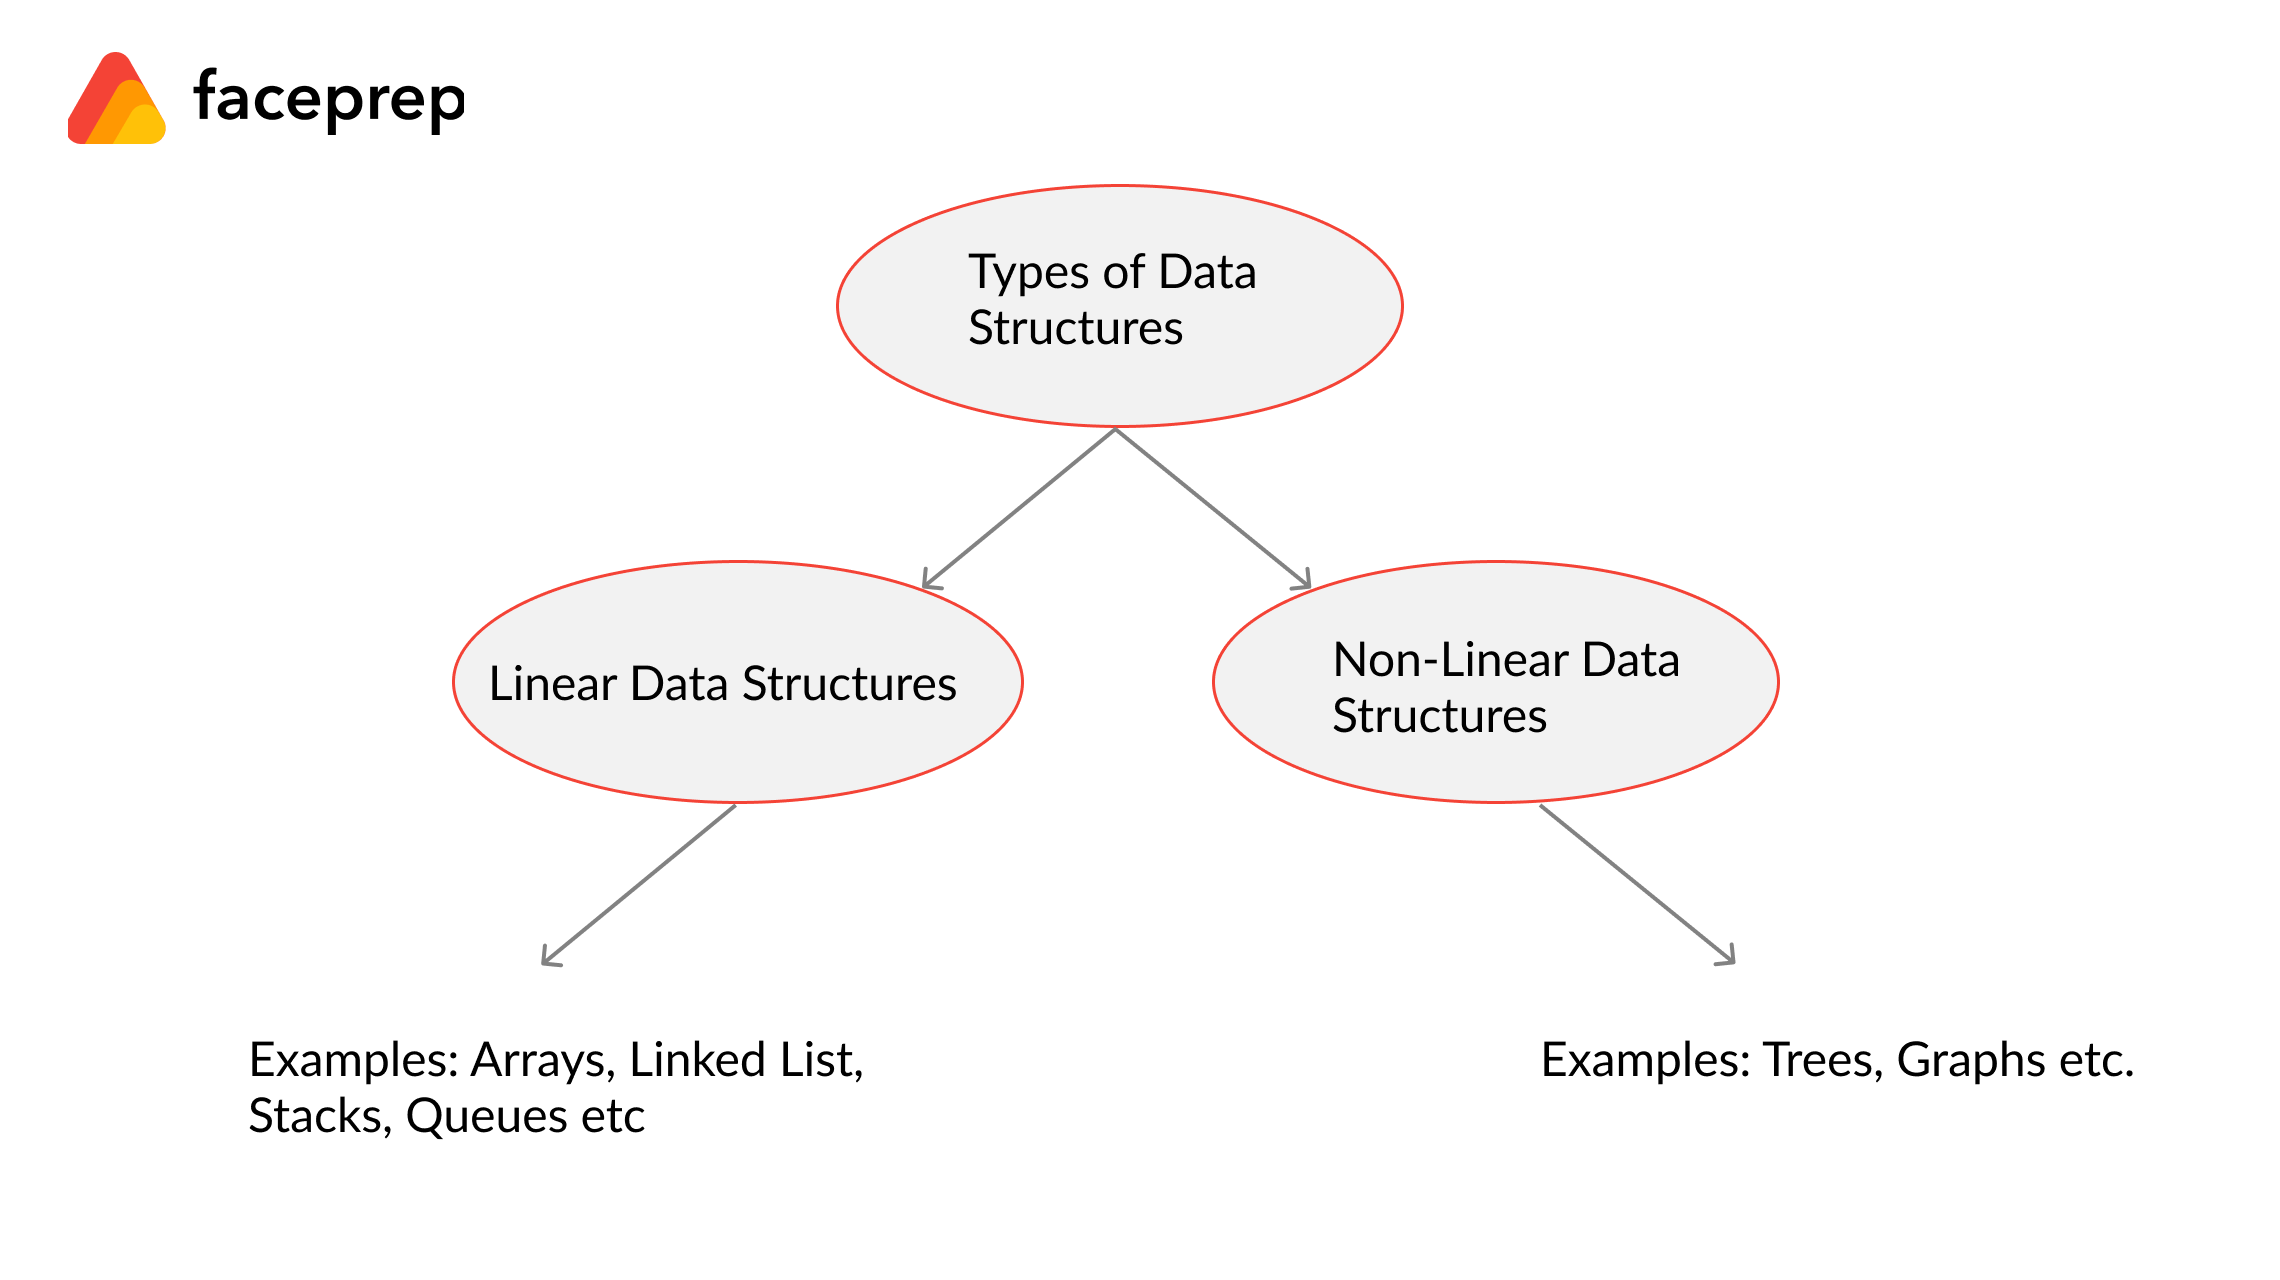 Types of data structures